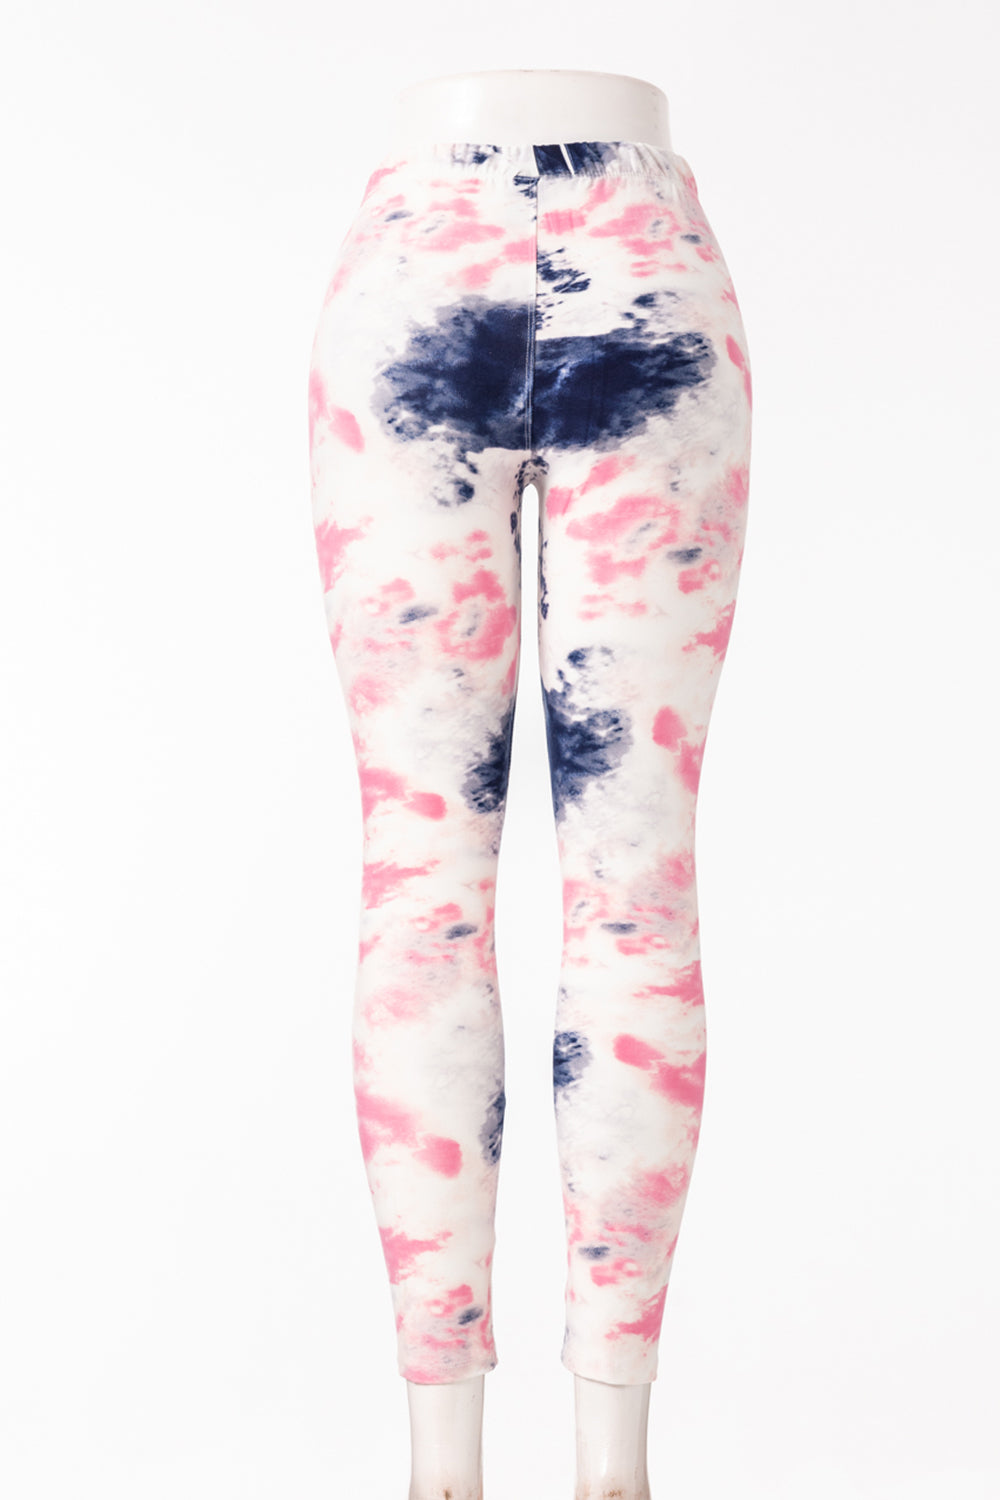 Skull Print Fur-lined leggings with 4 way stretch by Just Cozy.